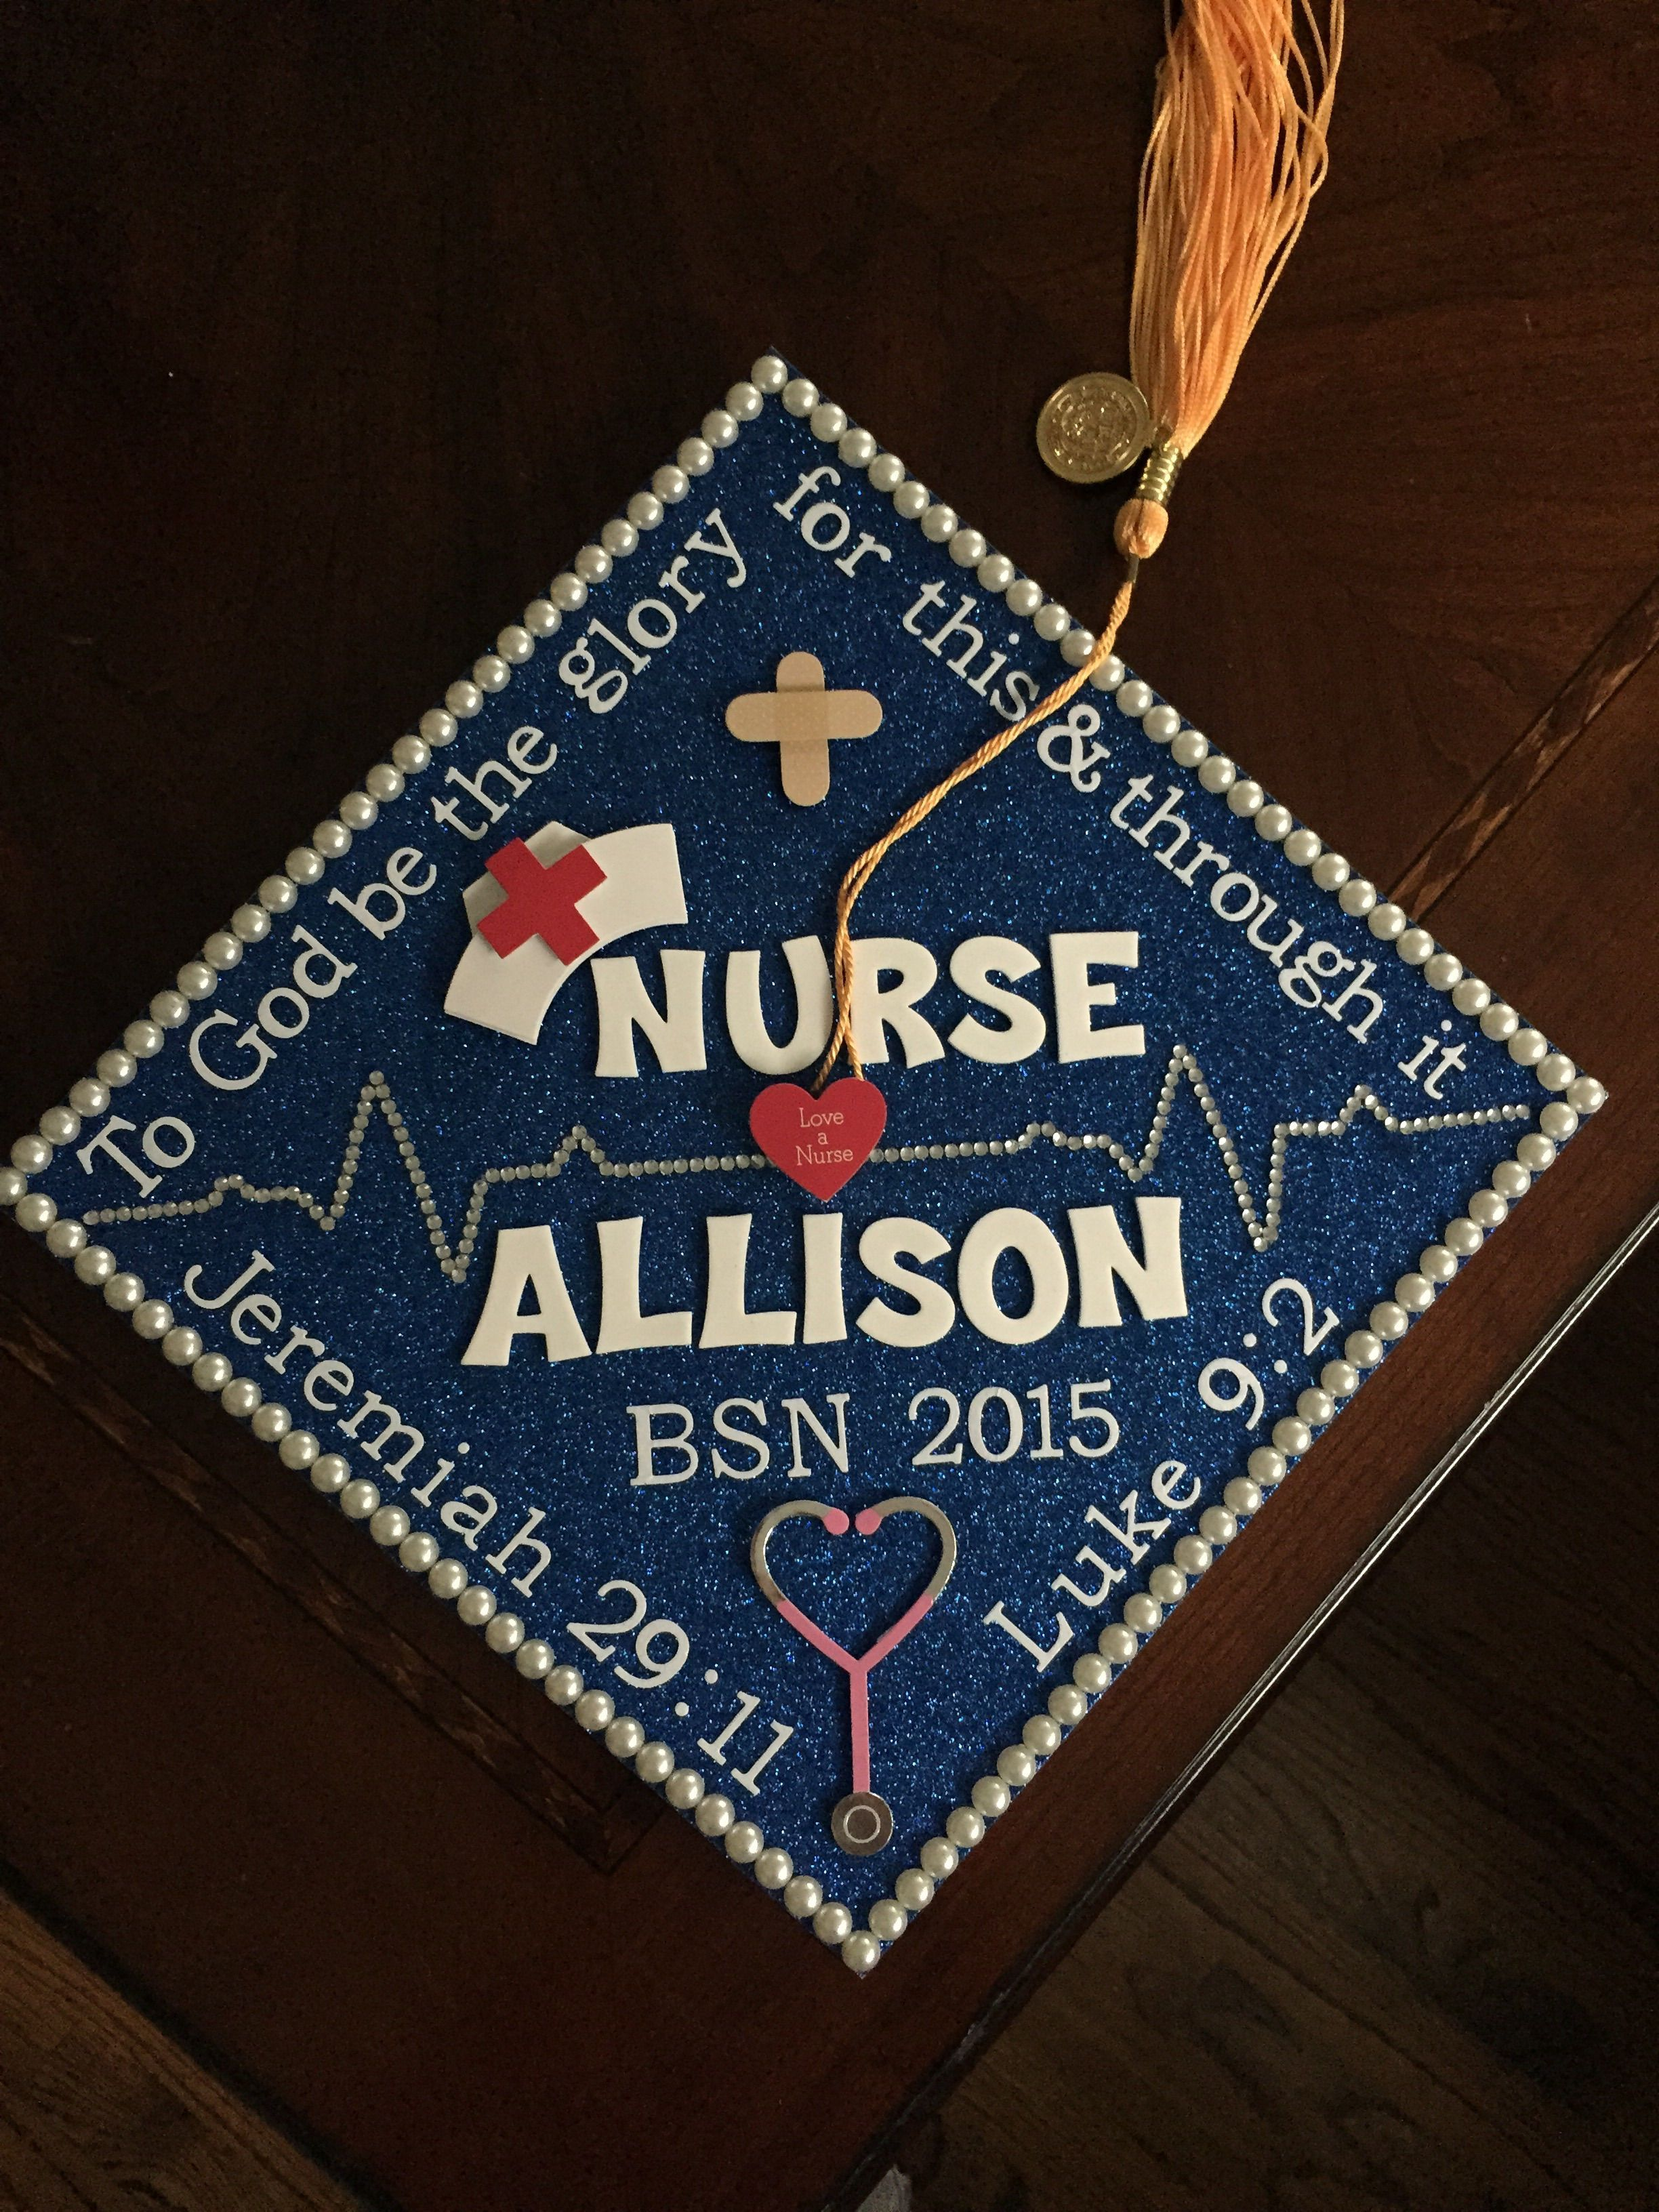 9 Best Graduation Cap Ideas for Everyone in 9  Bsn